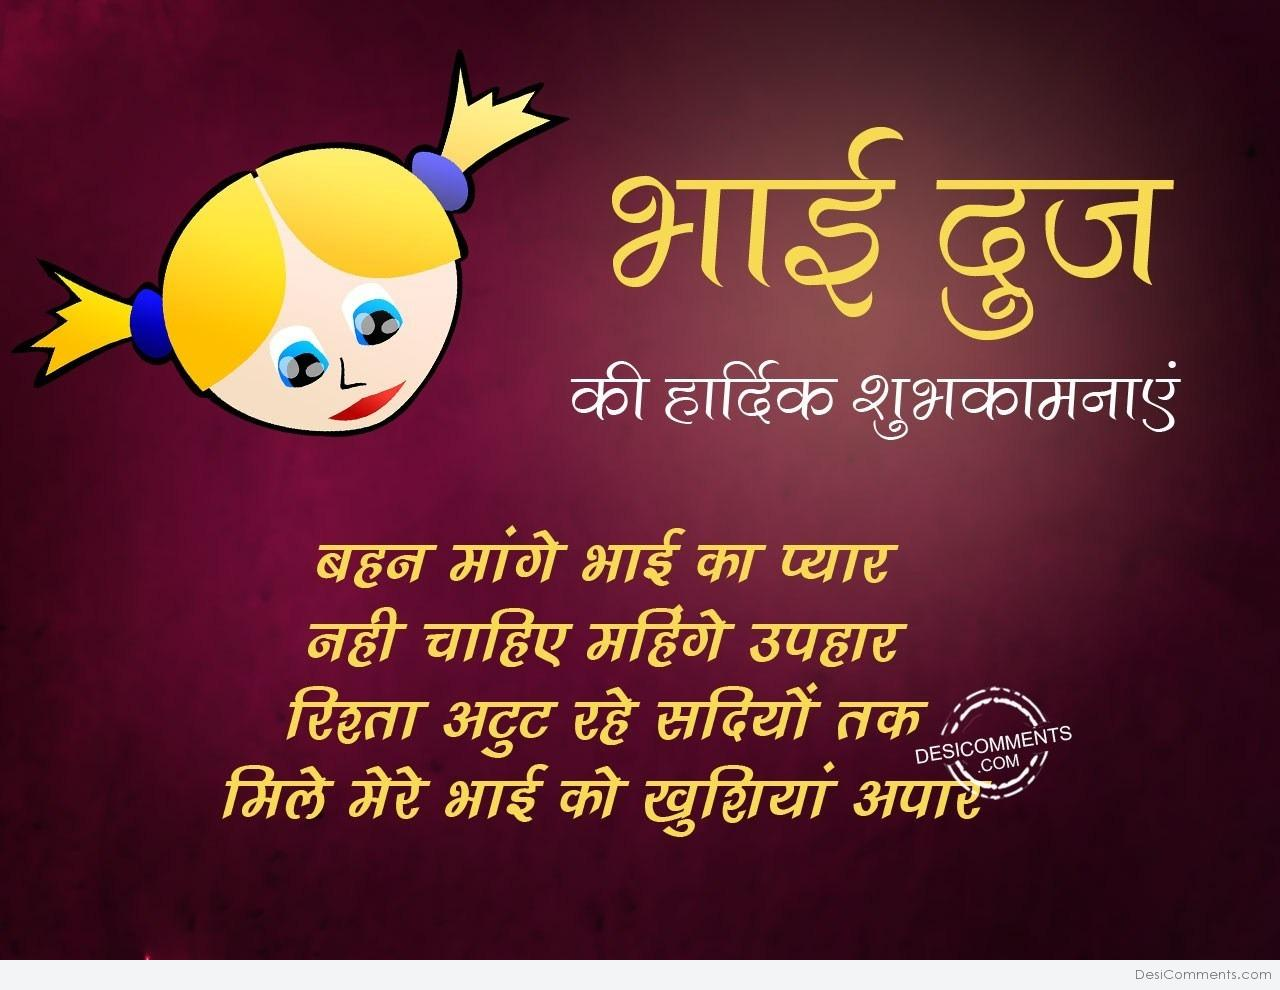 Love Quotes With Wallpapers In Hindi Behan Mange Bhai Ka Pyar Desicomments Com